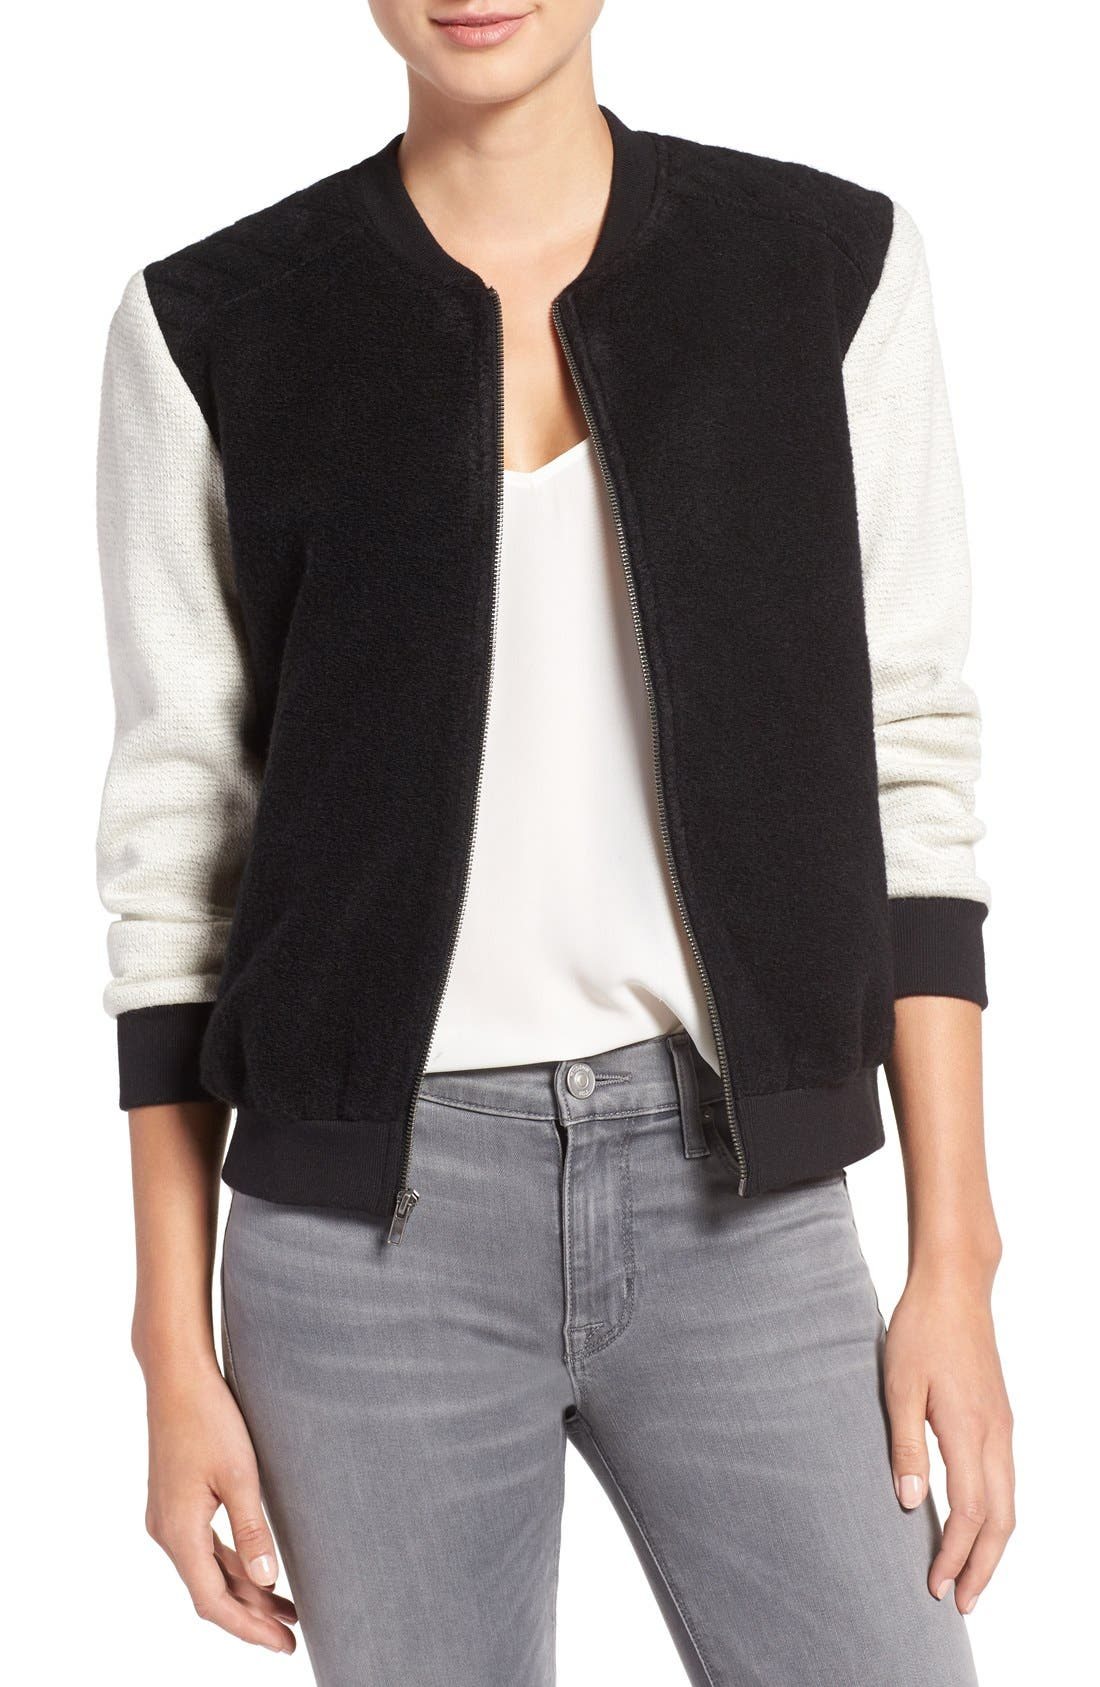 Alternate Image 1 Selected - cupcakes and cashmere 'Tompkins' Colorblock Varsity Jacket